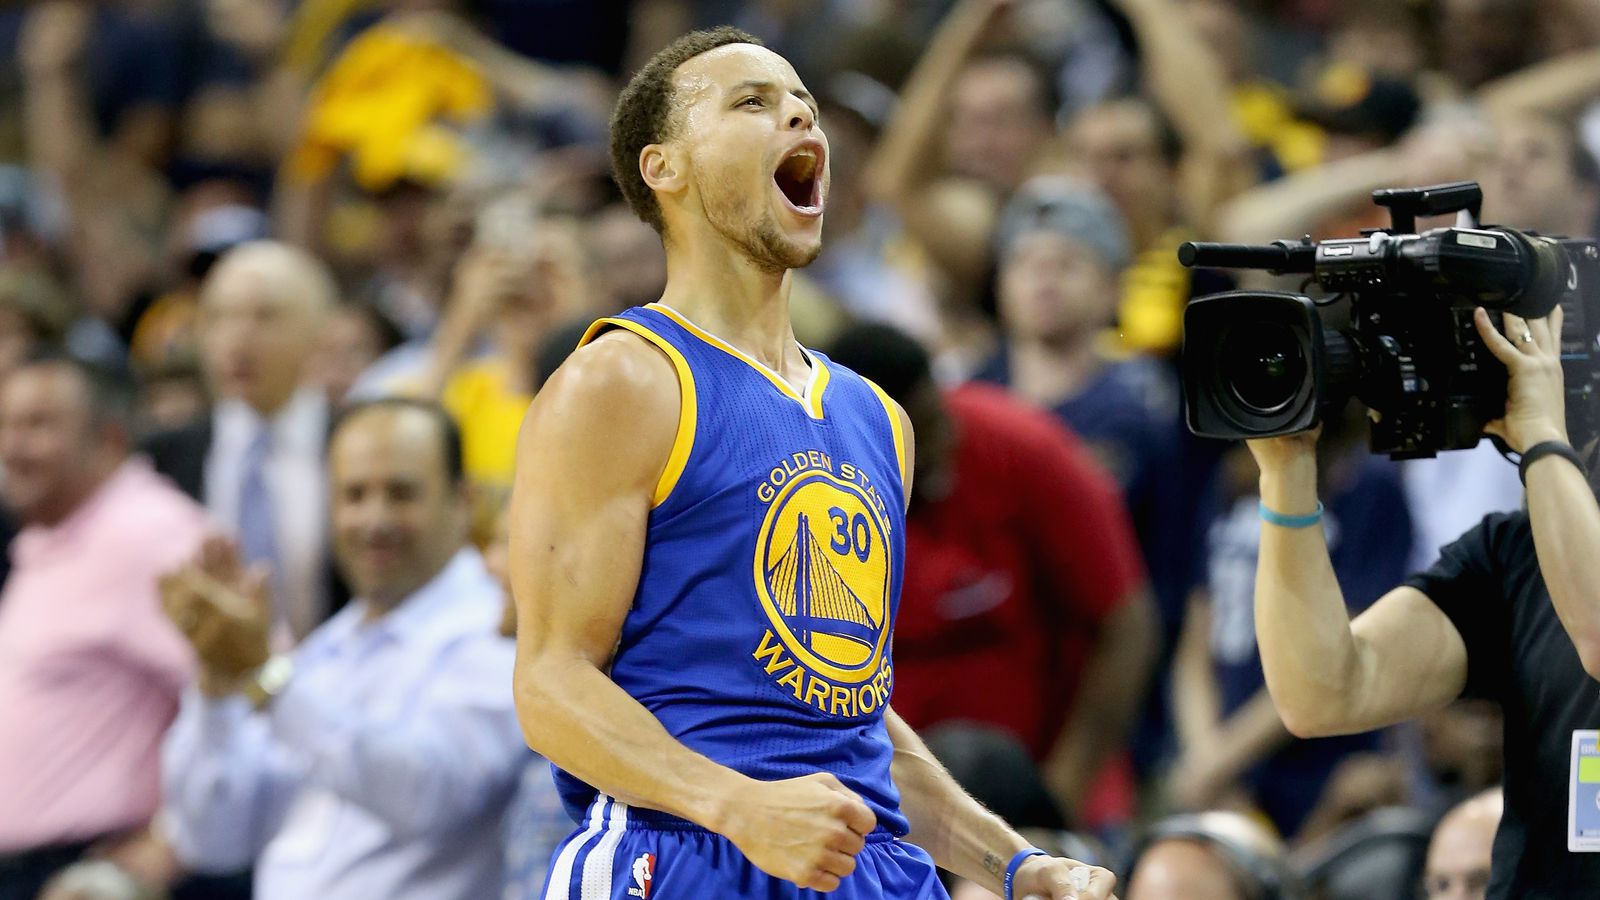 Warriors vs. Grizzlies 2015 results: 3 things we learned as Golden State advances - SBNation.com